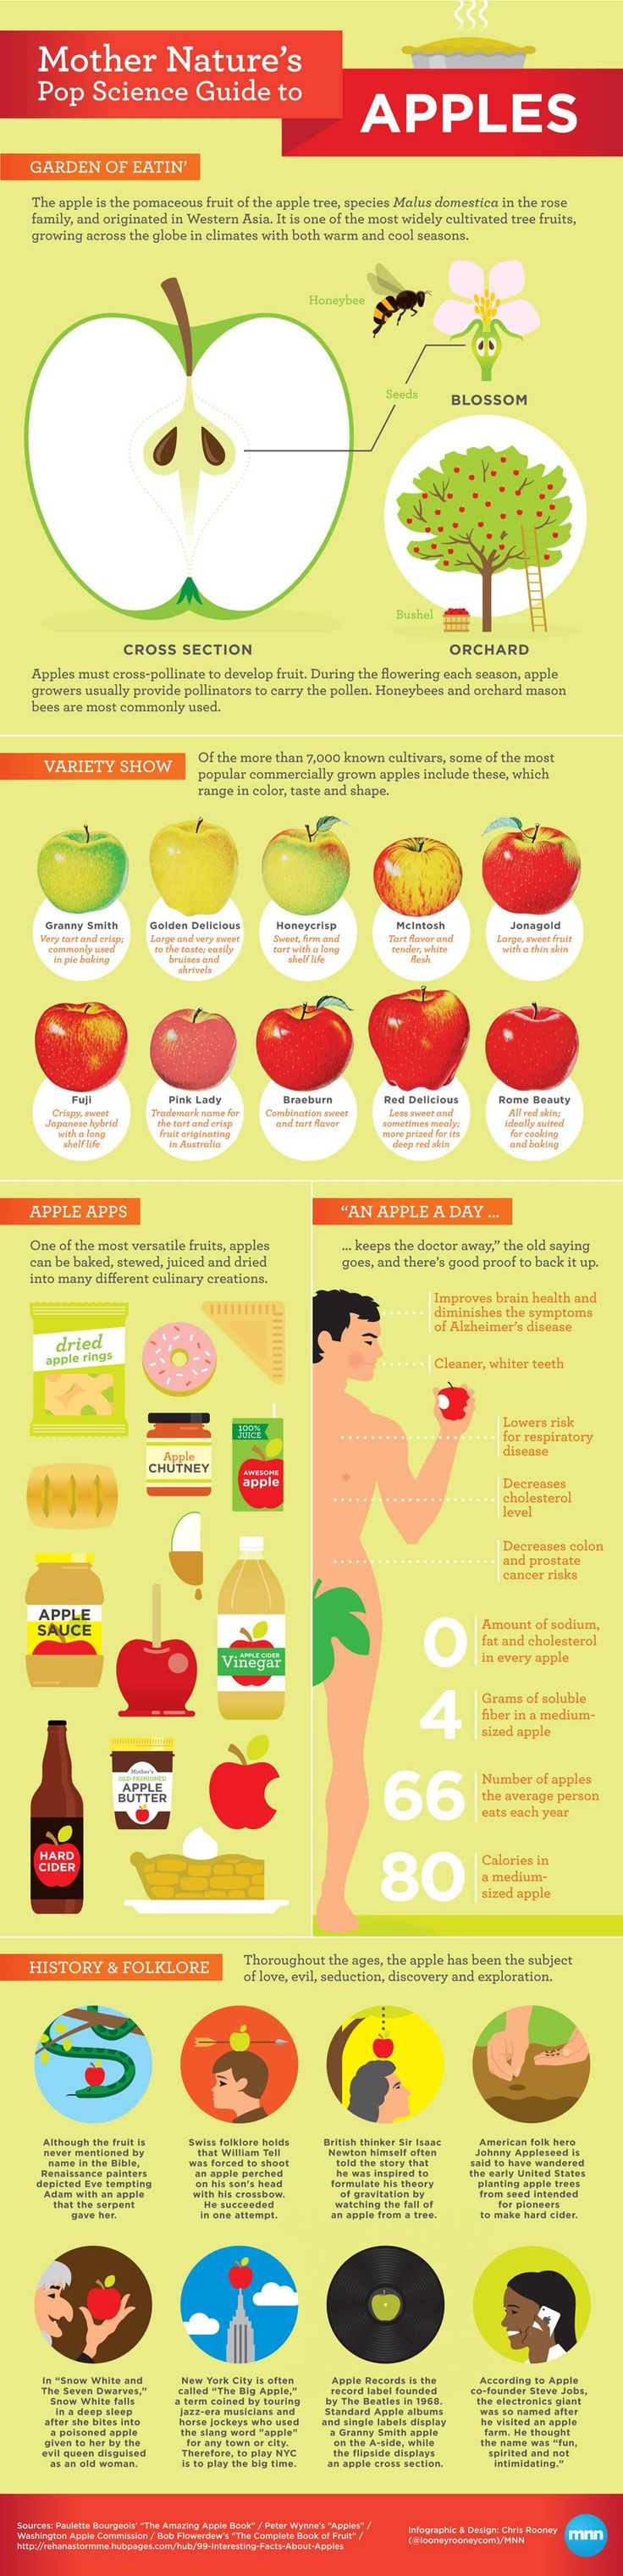 287 best nature study images on pinterest nature study life mother natures pop science guide to apples infographic robcynllc Image collections